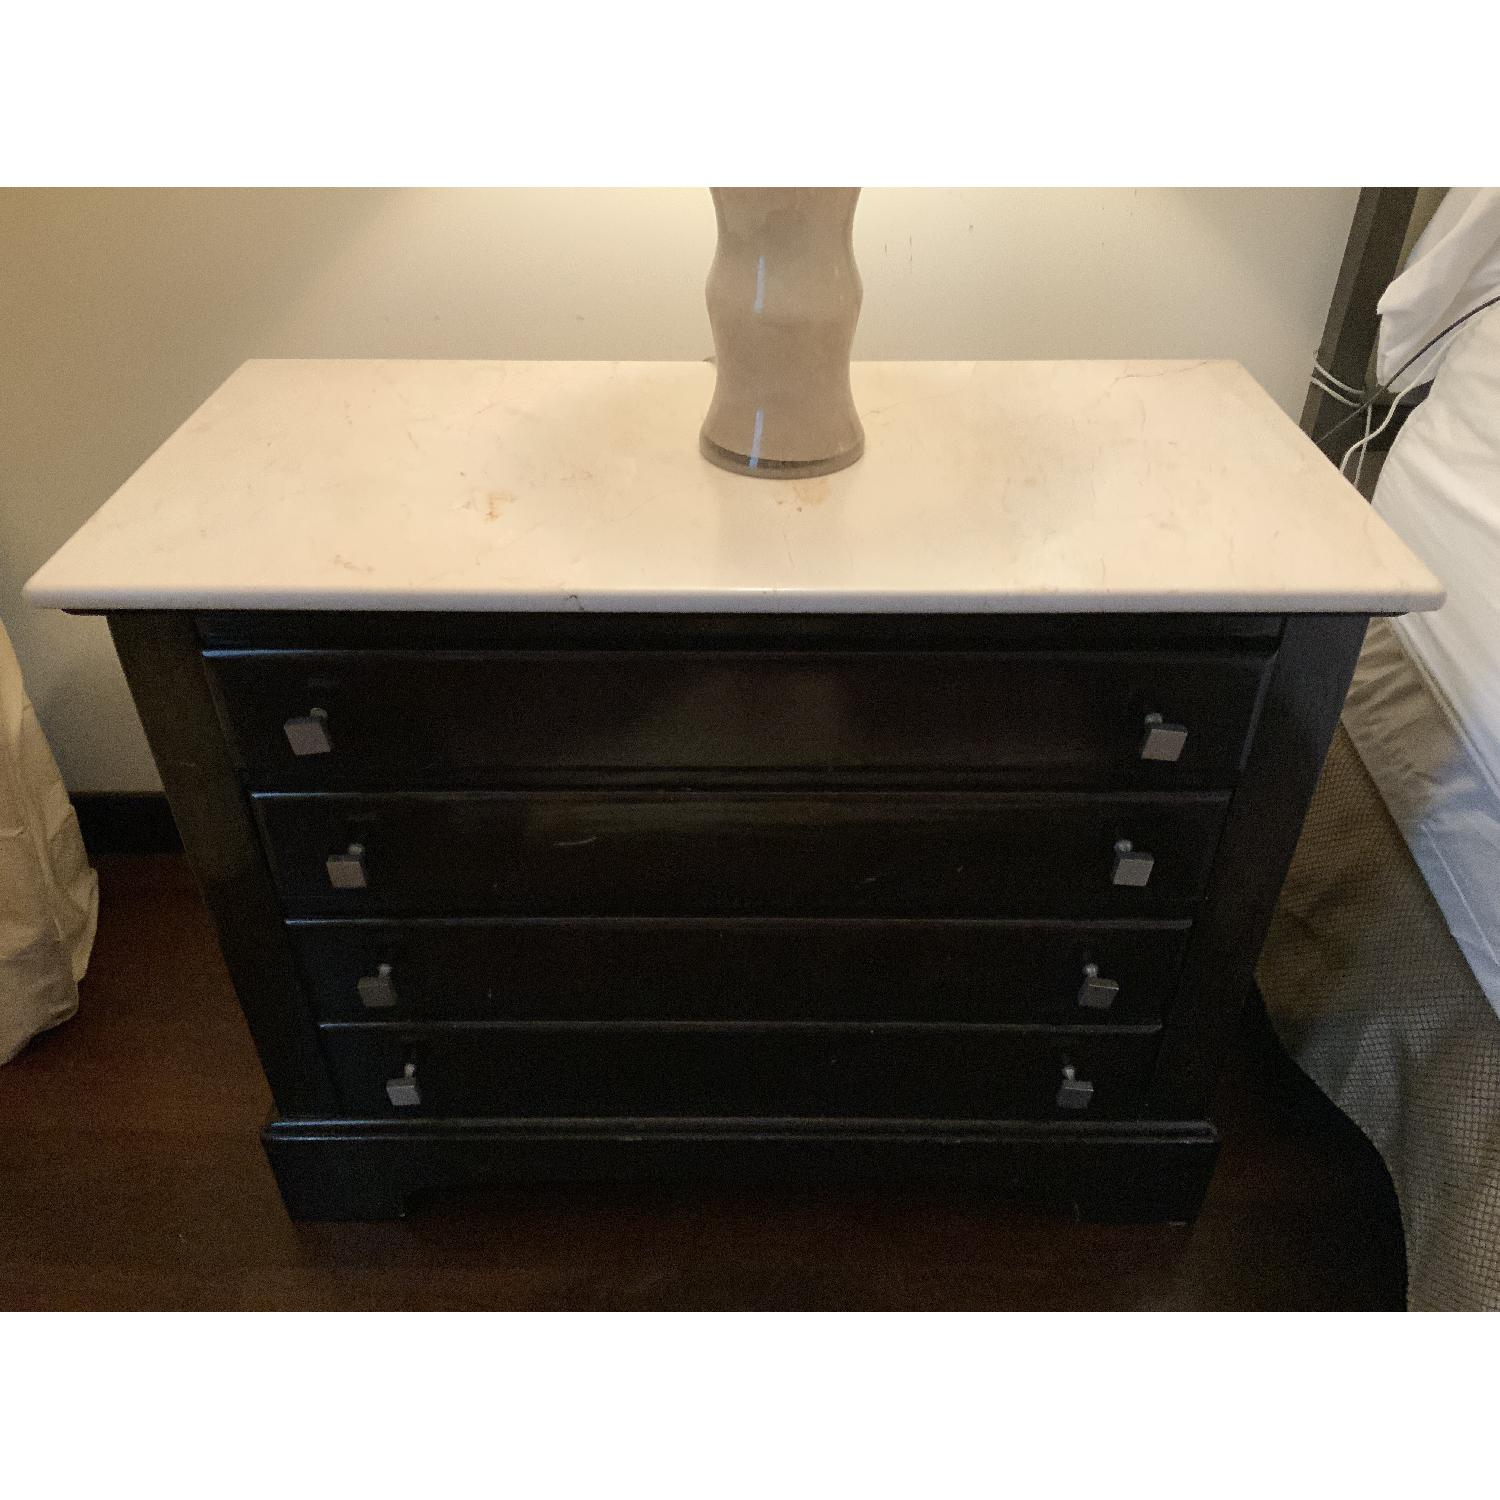 Bernhardt End Tables w/ Marble Tops - image-1